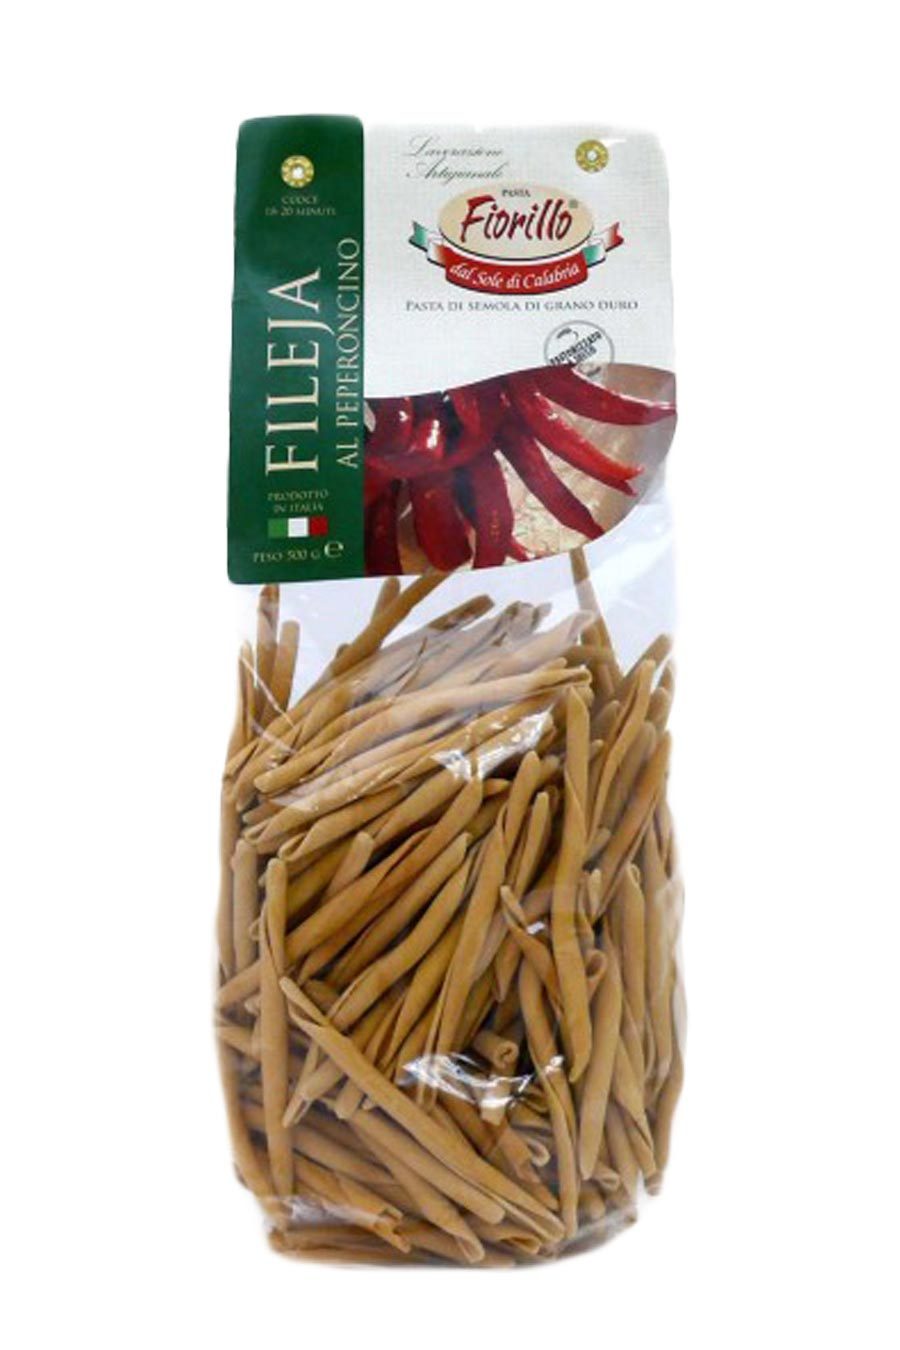 Fileja Pasta with Chilli Pepper 500g - Agrumia